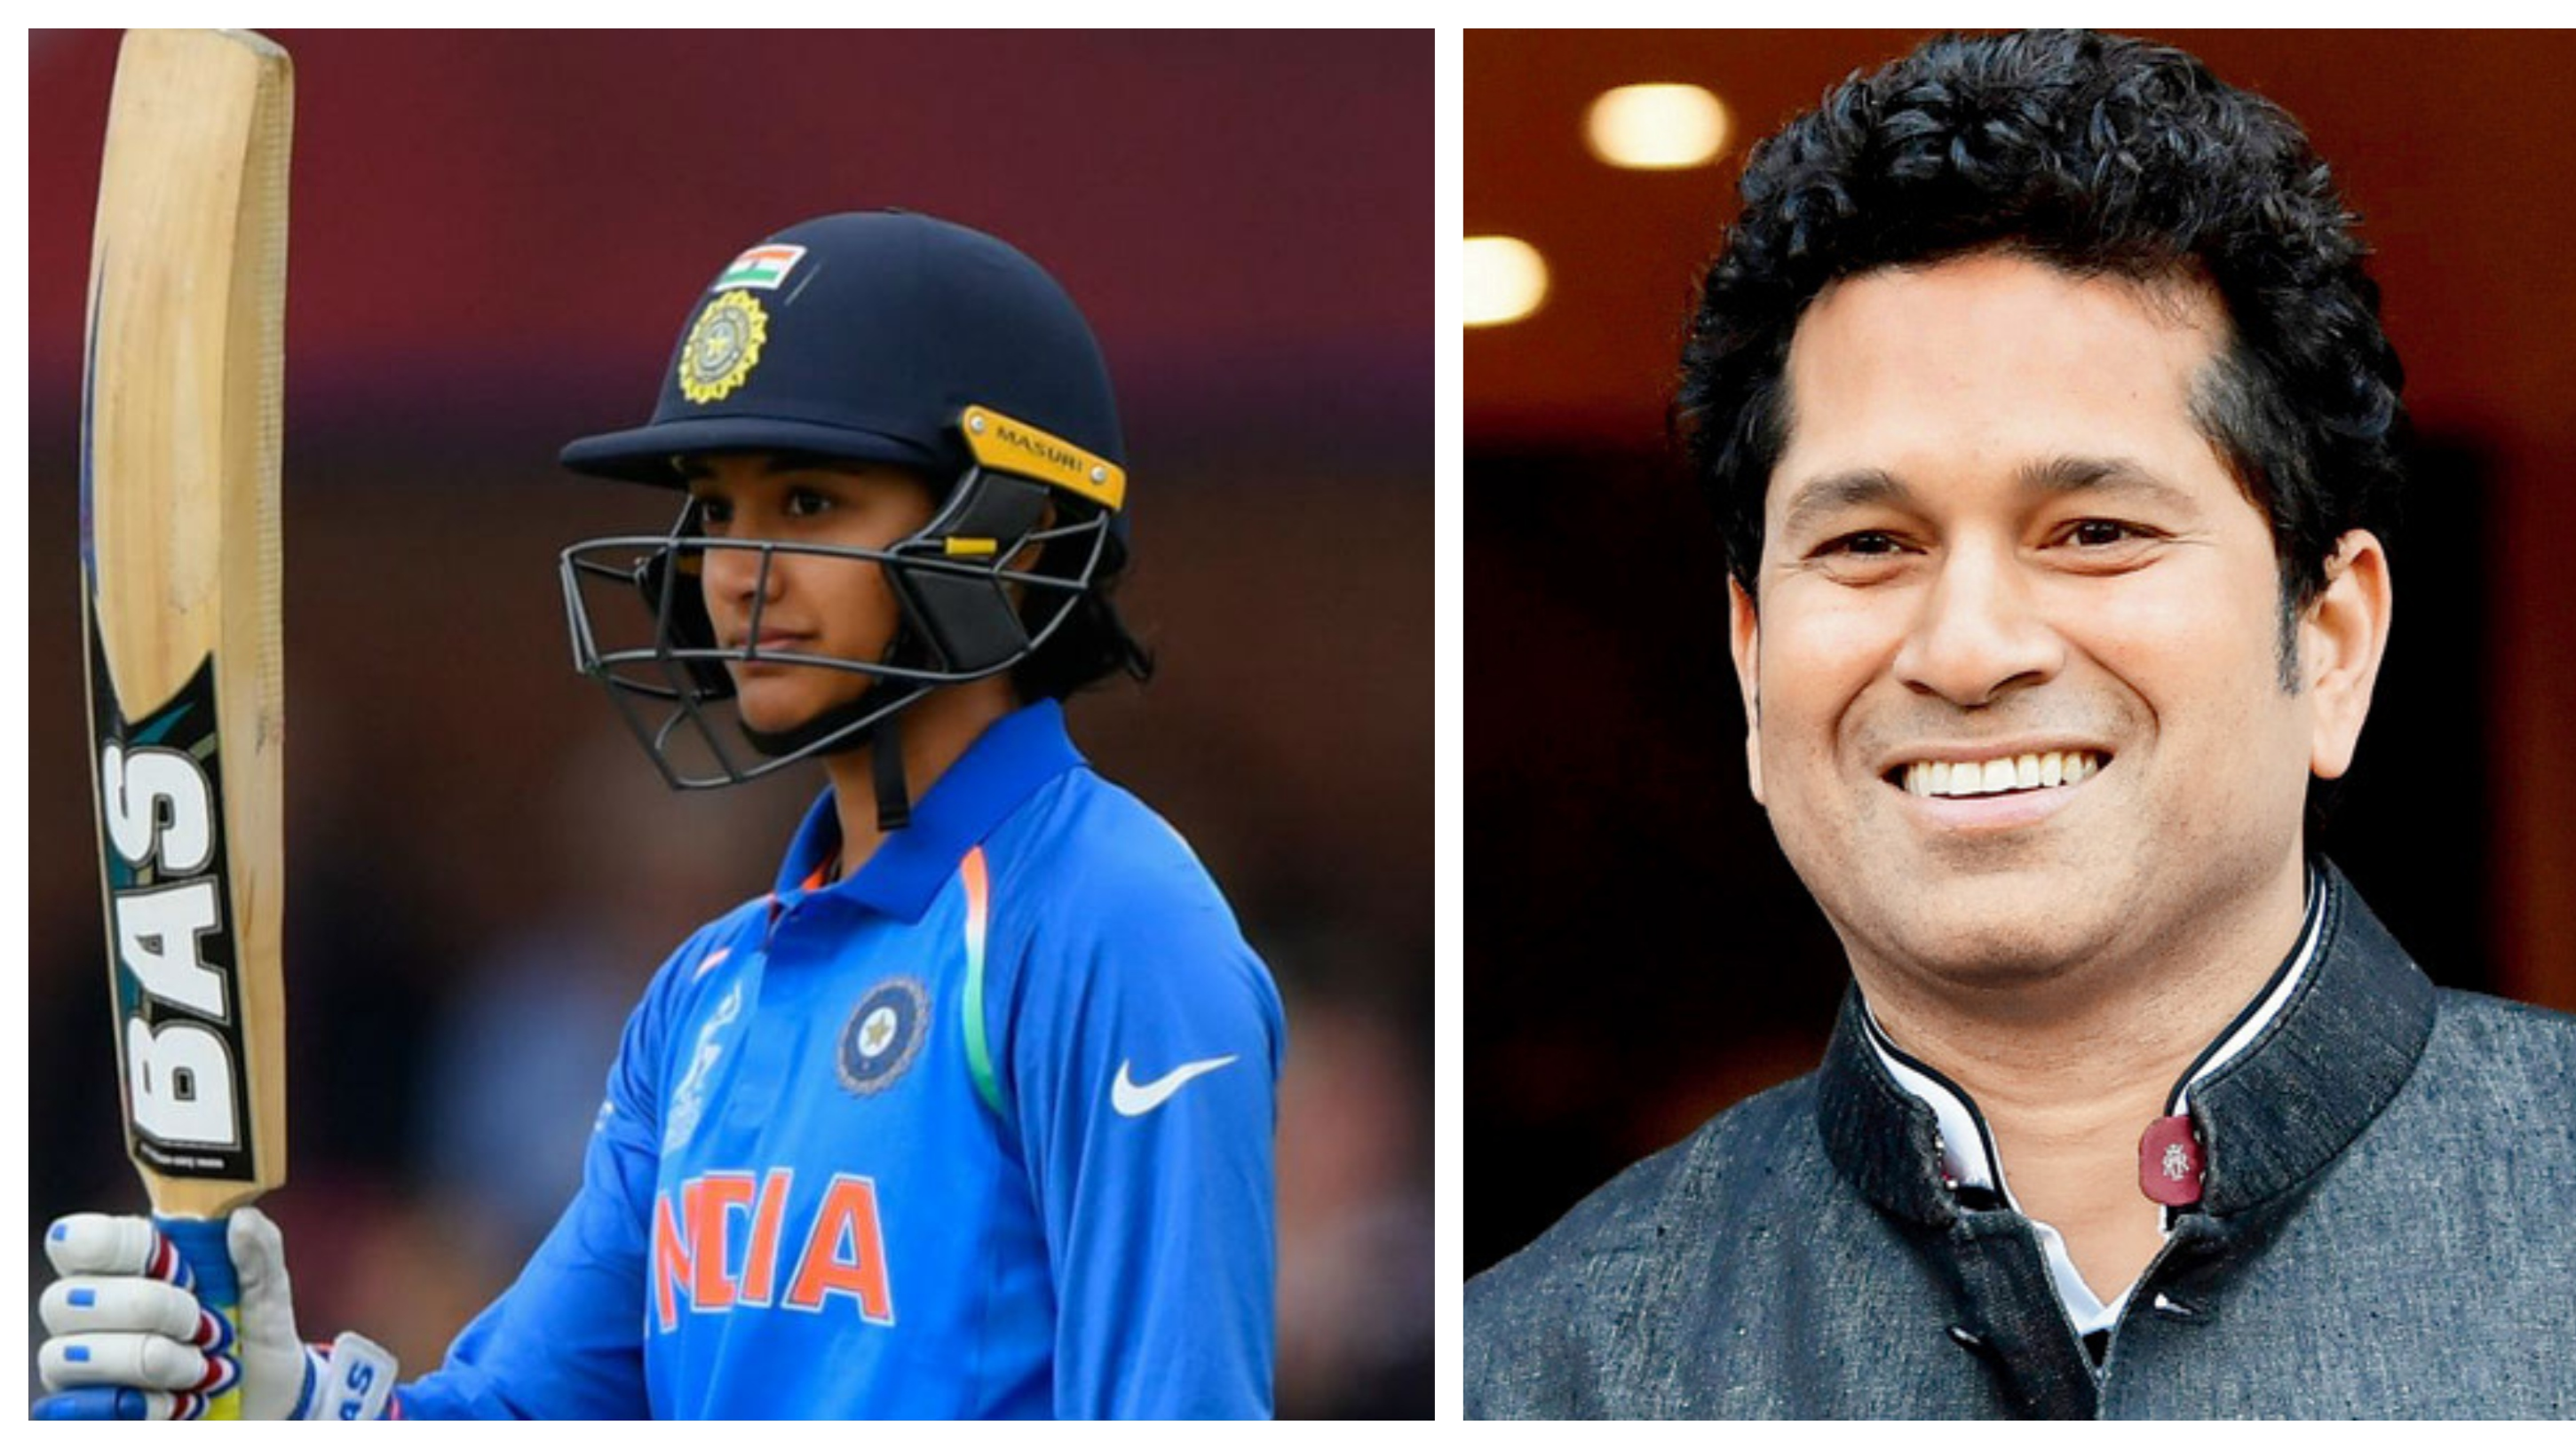 Sachin Tendulkar wishes Smriti Mandhana on her 22nd birthday